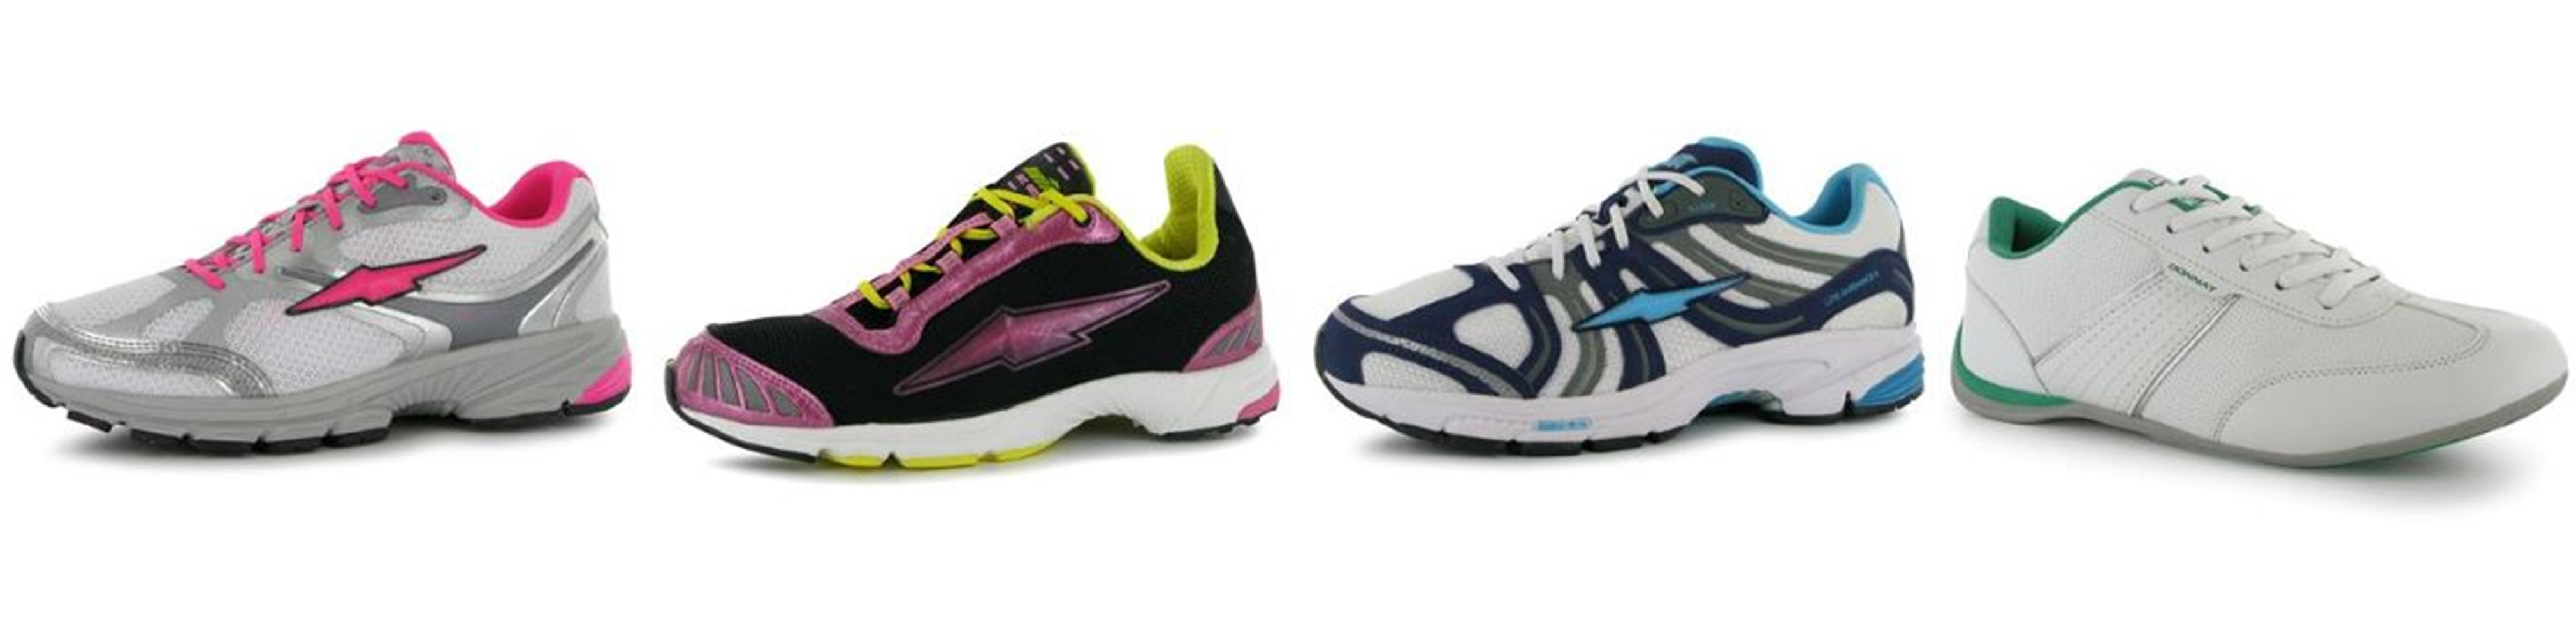 Donnay Shoes Online